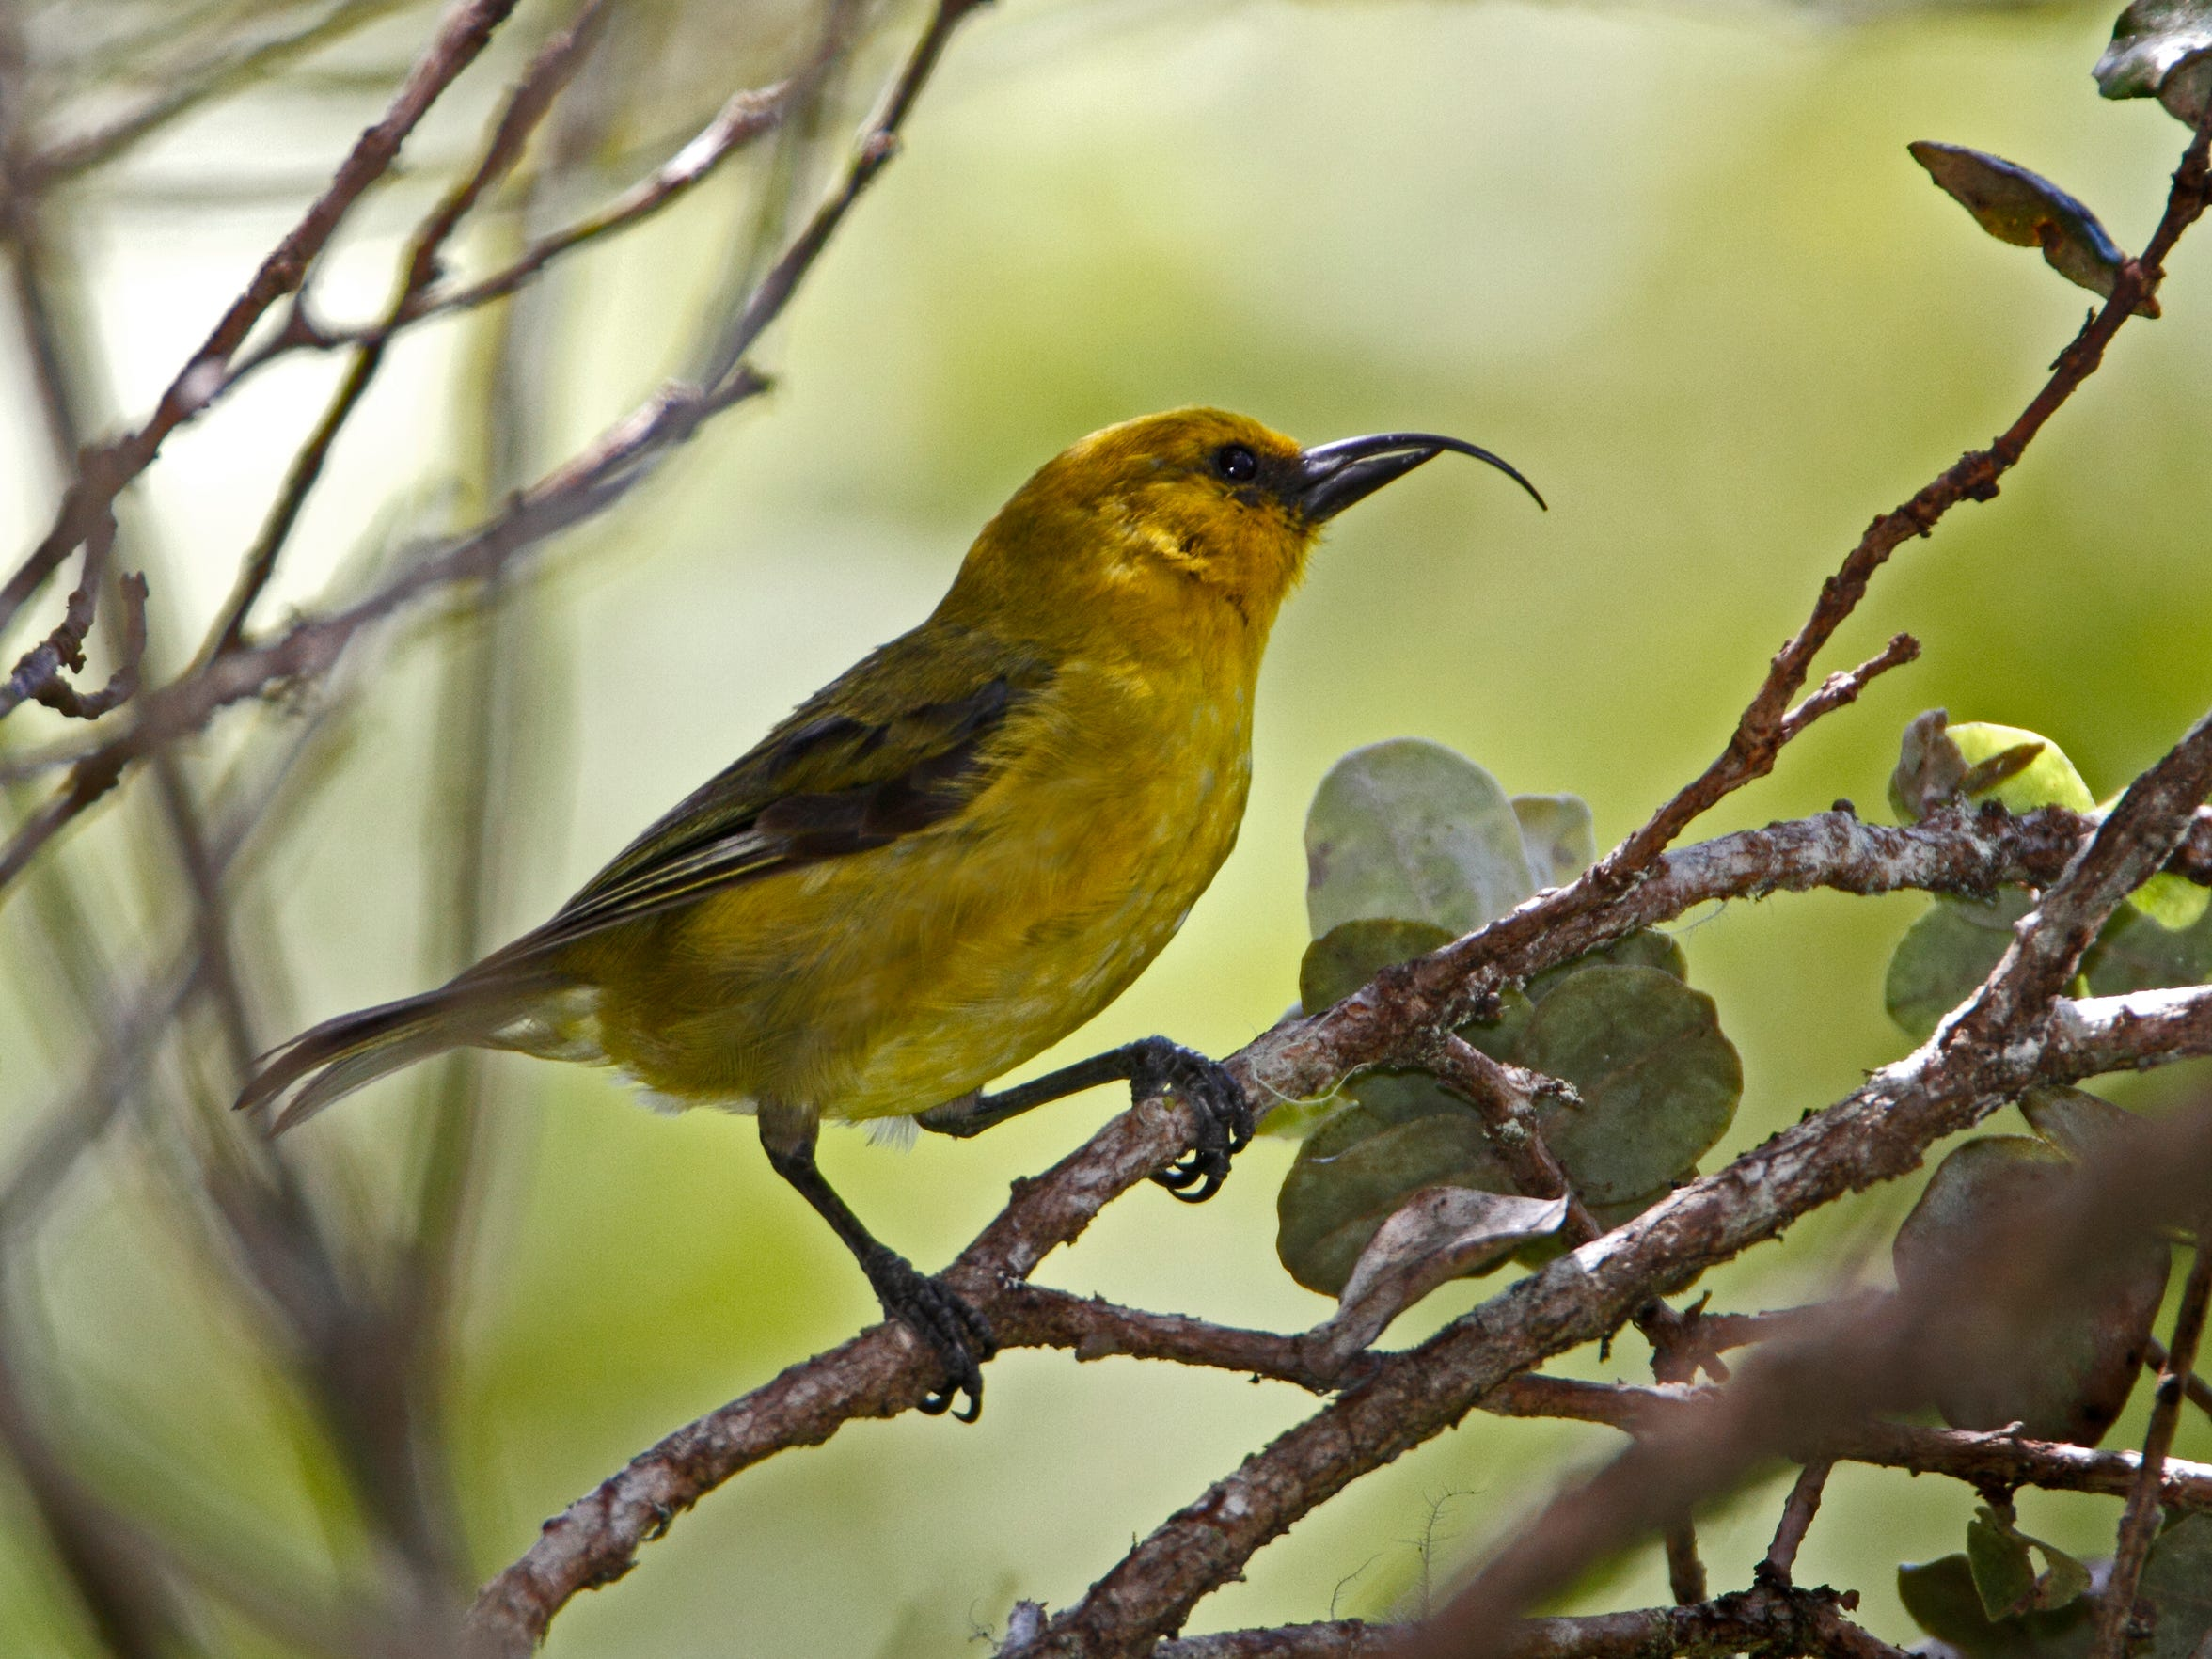 Hawaii forest managers are working to protect the akiapōlā'au,